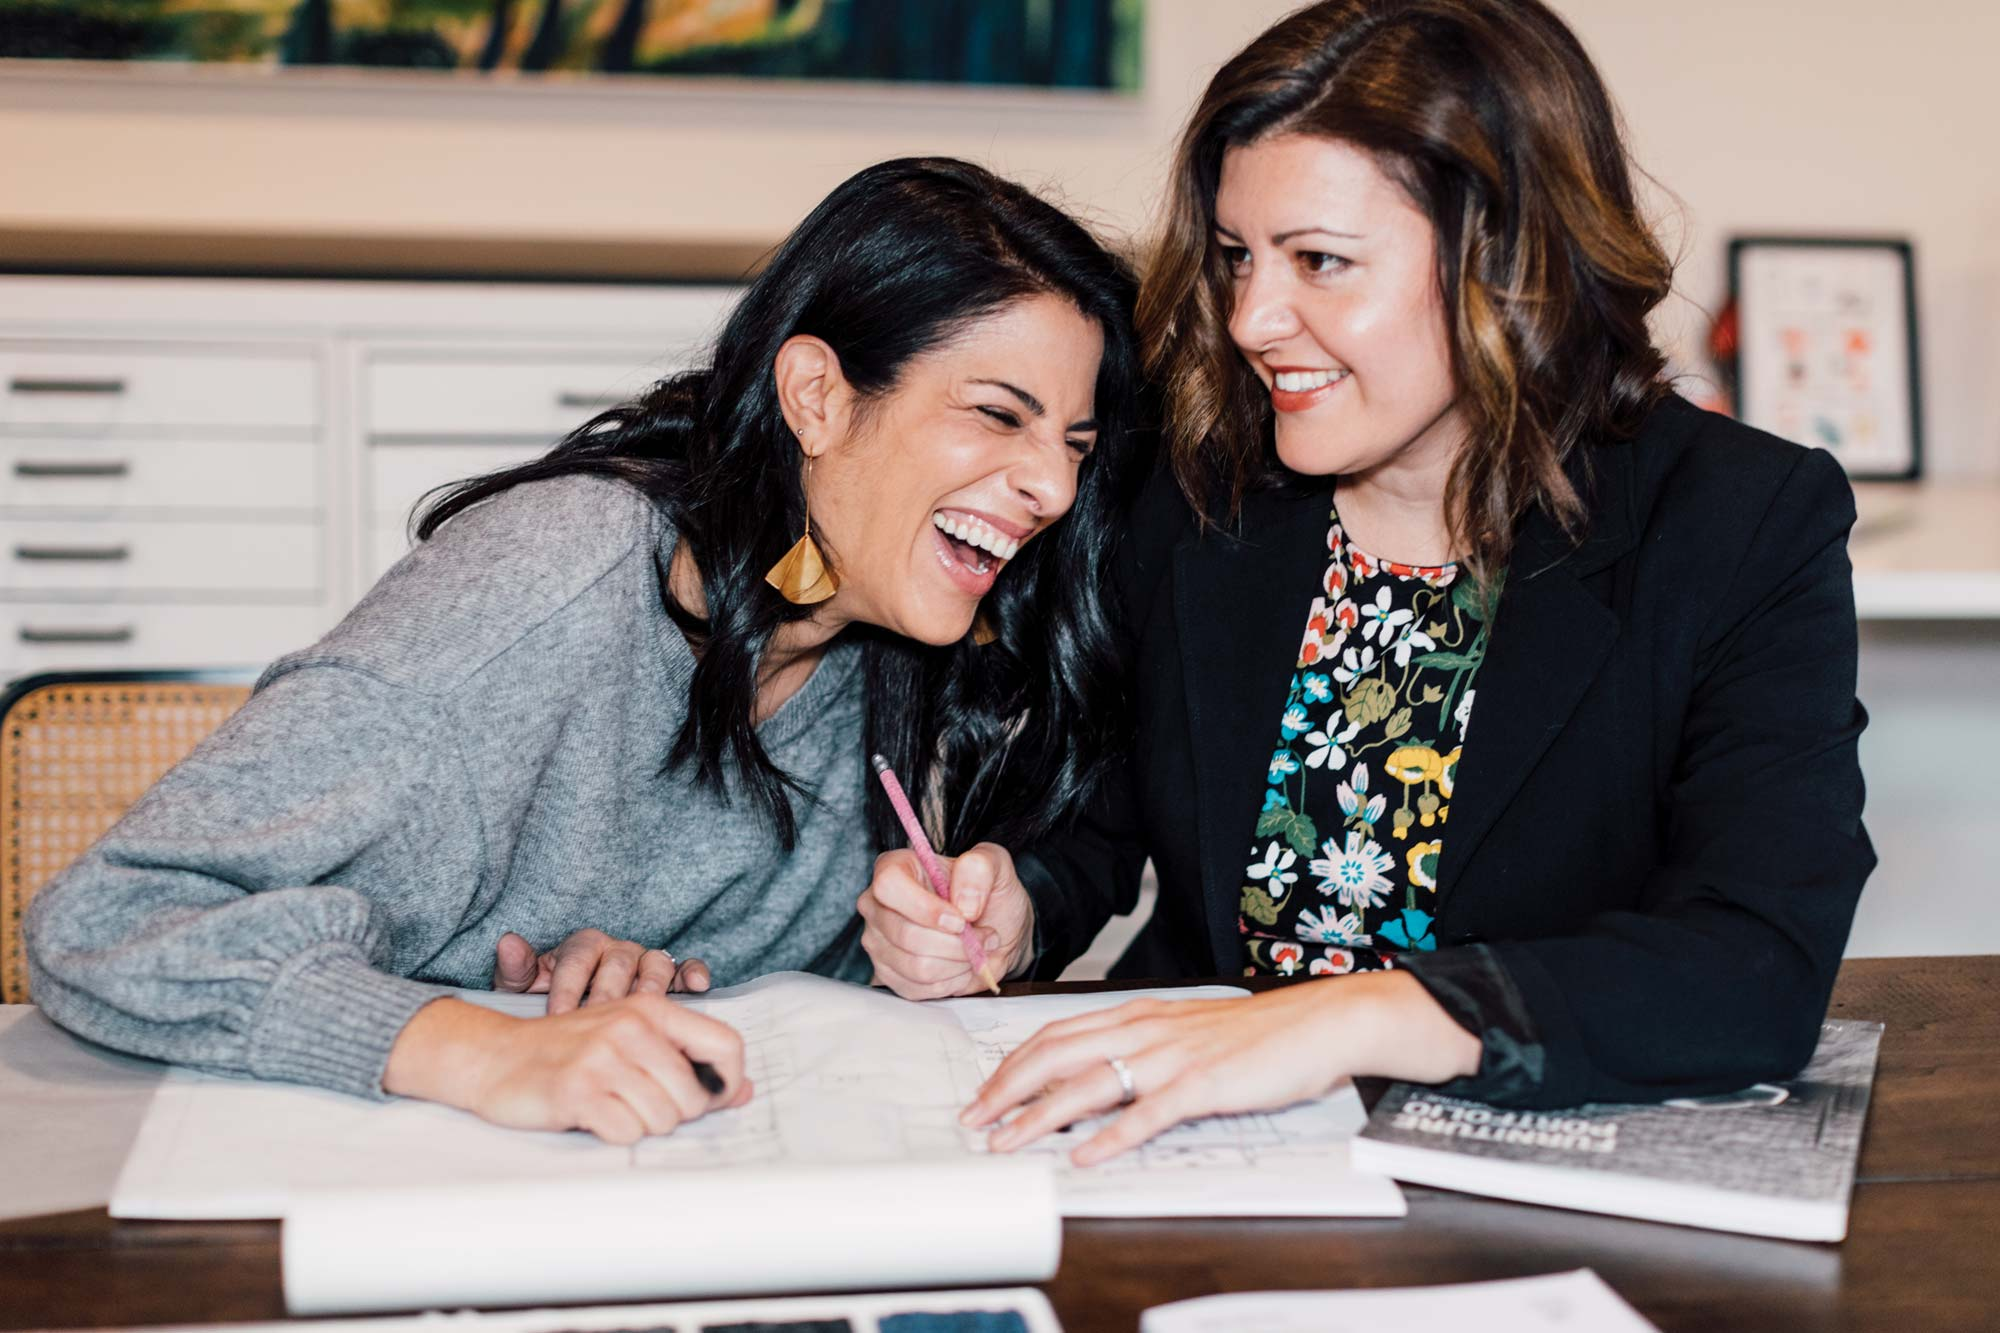 Zoulamis and Scamman share a laugh. The partners have a lighthearted rapport that makes all their hard work look easy.